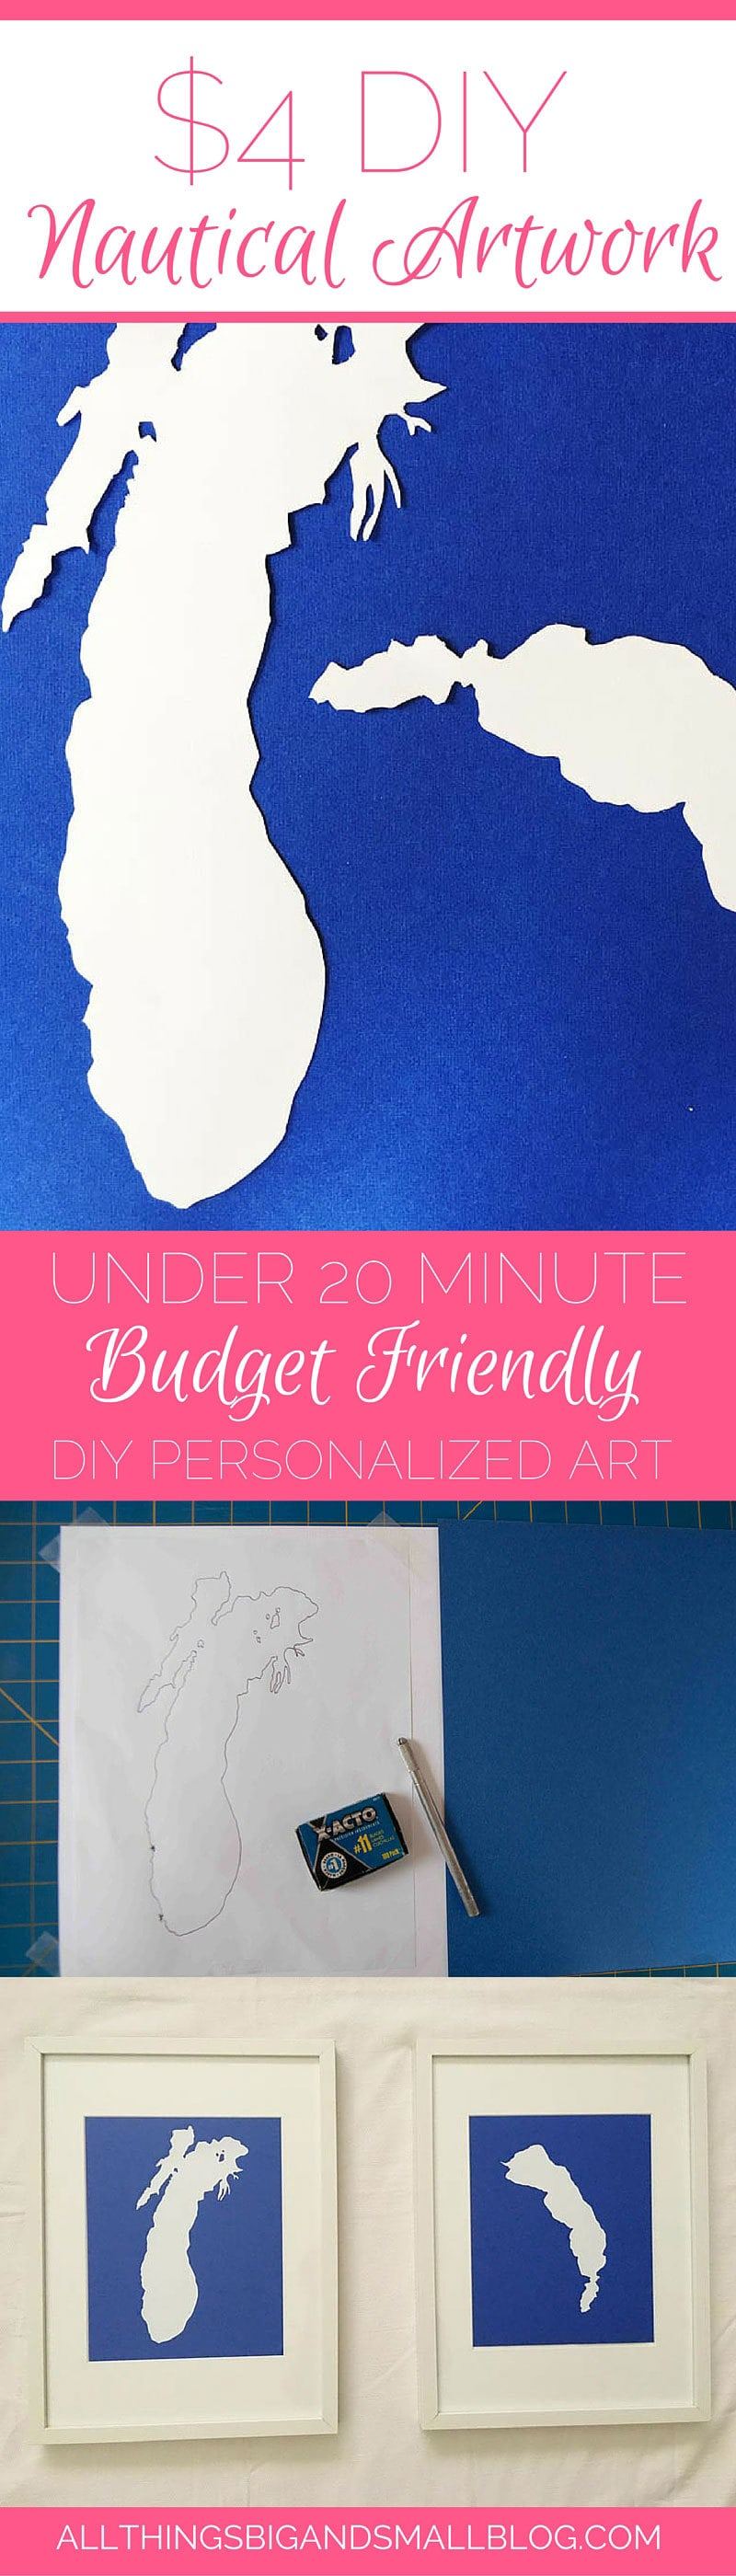 DIY Nautical Art- An easy budget-friendly project that is perfect inexpensive artwork for your home! This project only cost $4 and took under 20 Minutes! Perfect for busy moms! For more home decor projects go to All Things Big and Small Blog!